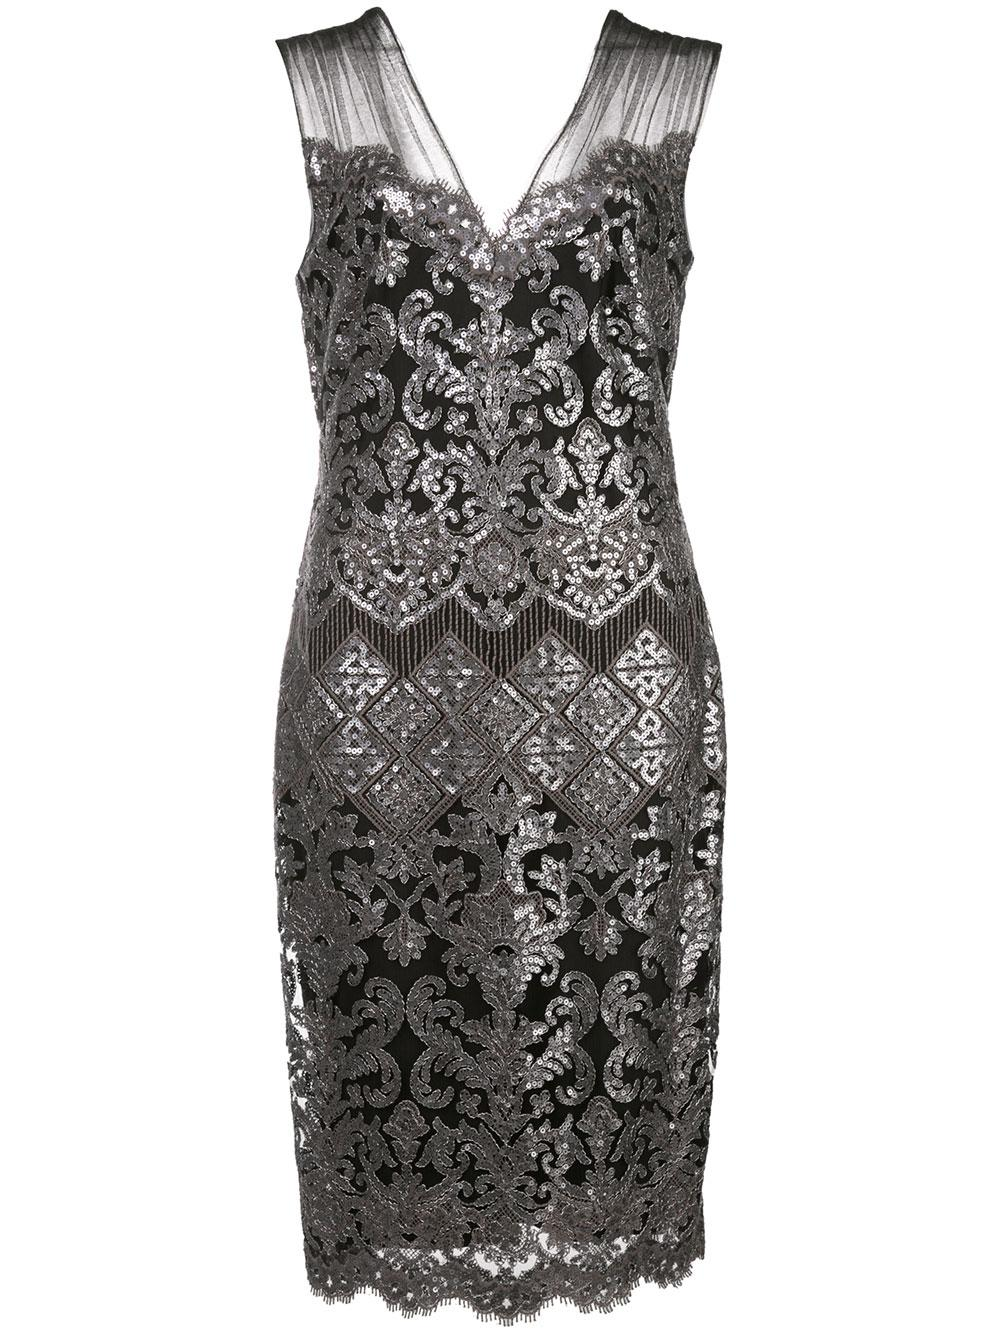 Sleeveless Lace Embroidered Cocktail Dress Item # BMN19511M